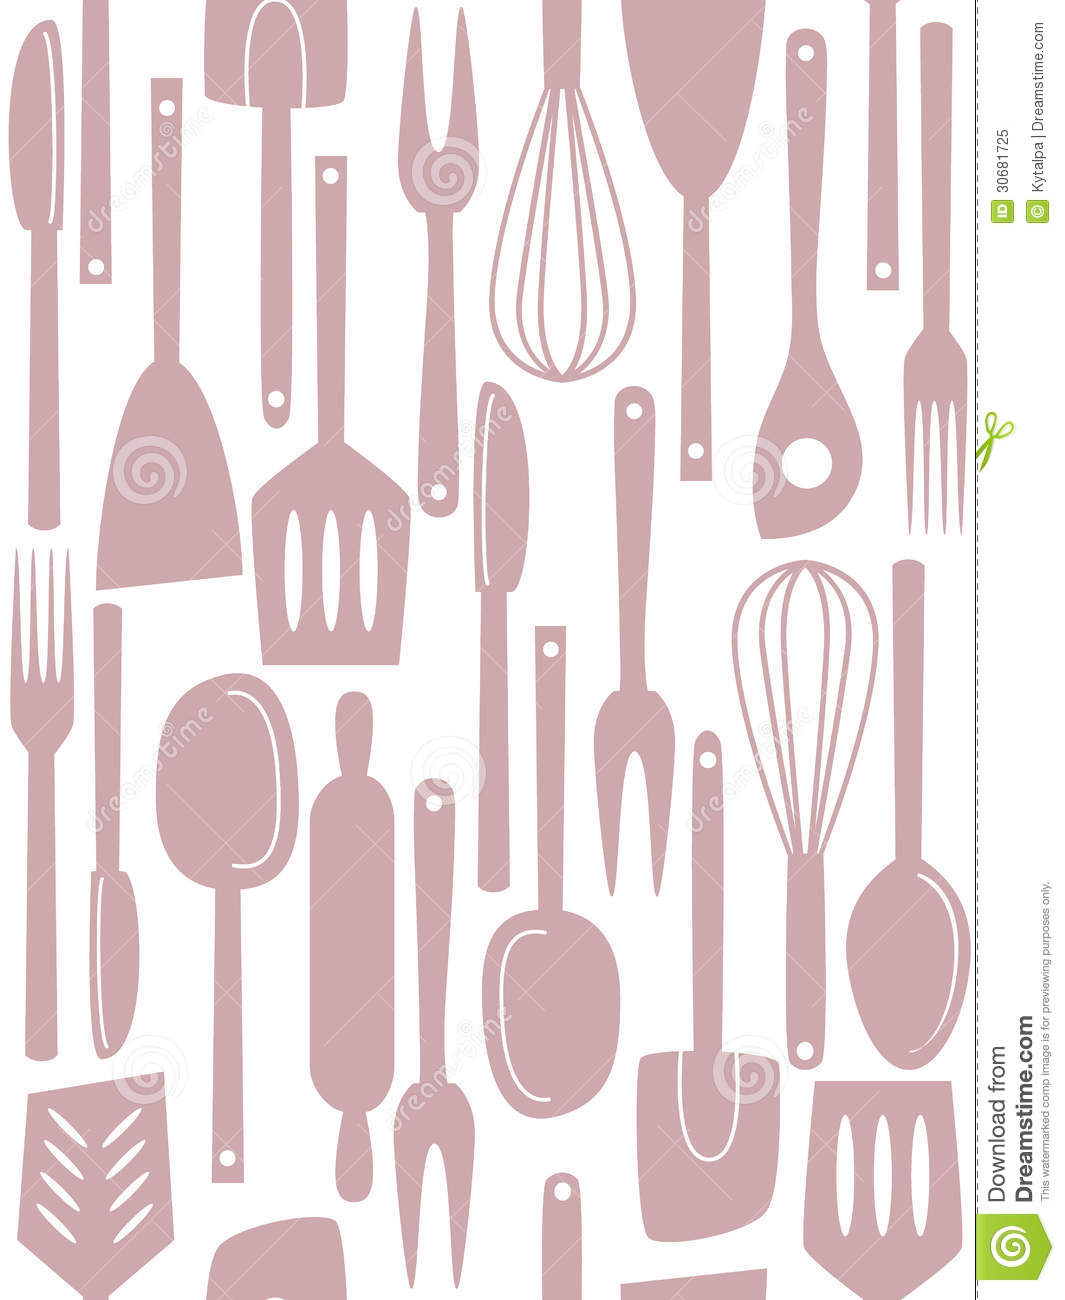 Kitchen Cooking Utensils Set